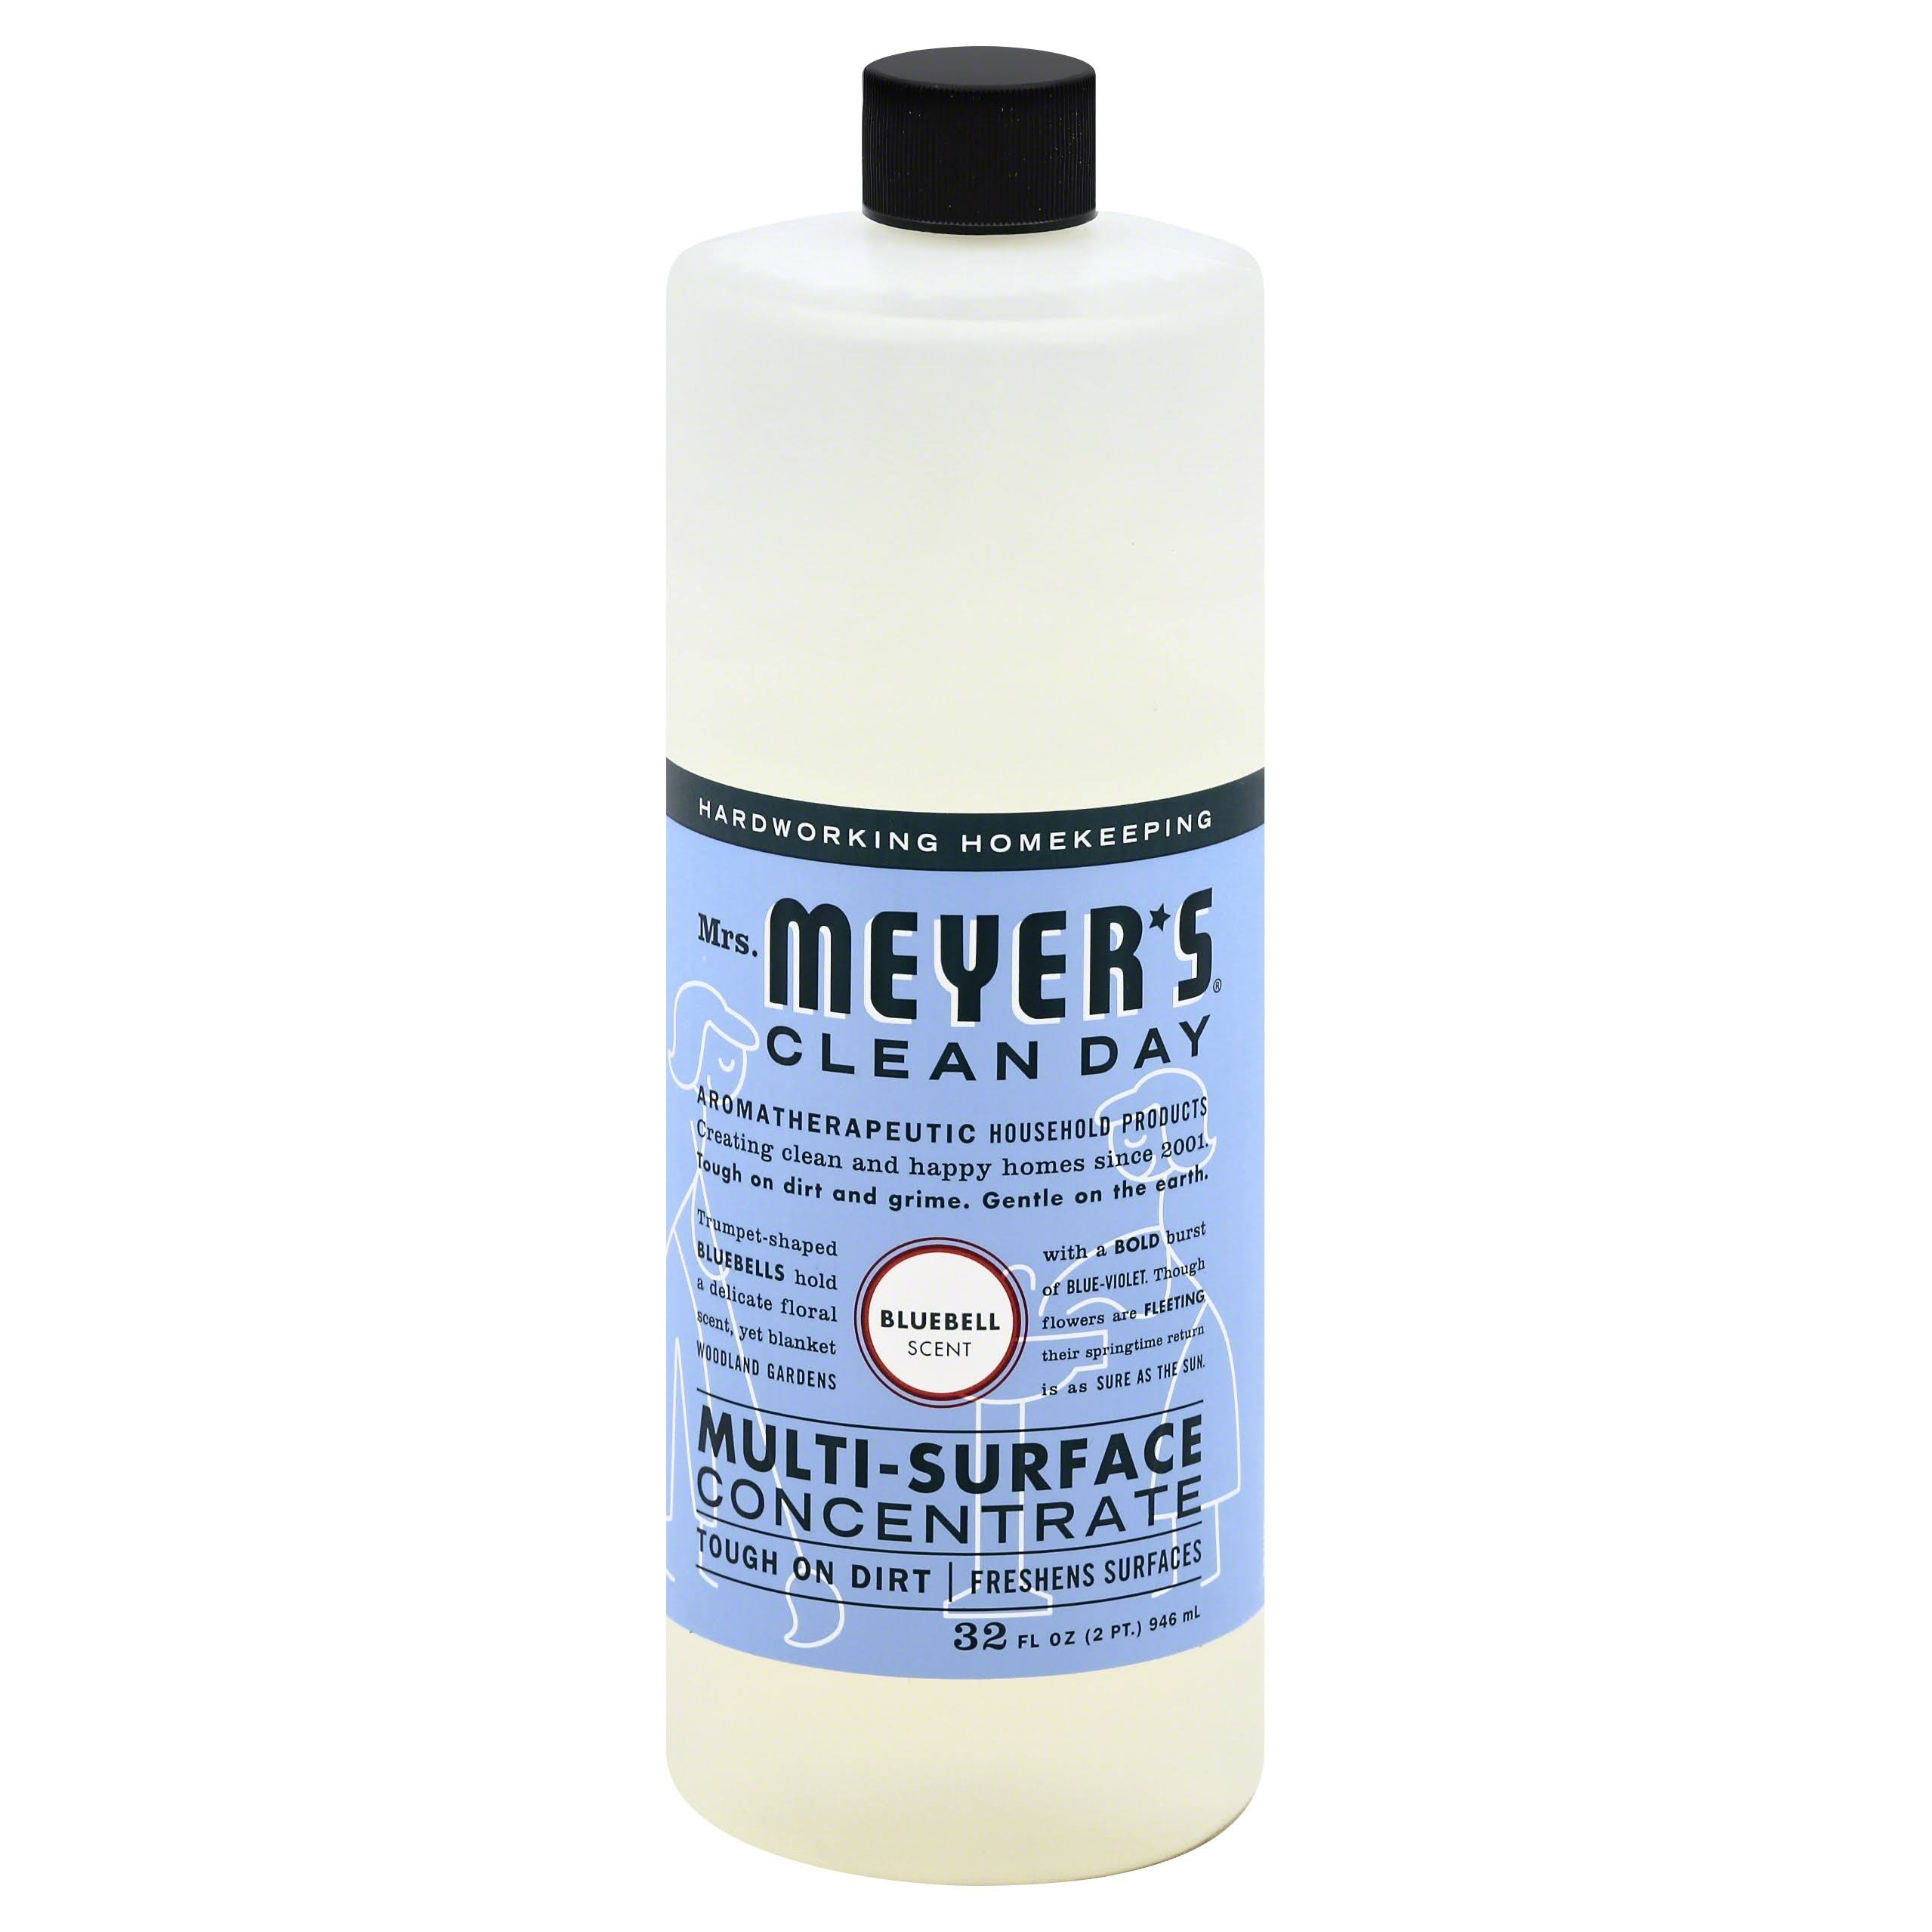 Mrs. Meyer's Multi Surface Concentrate - Bluebell, 32oz